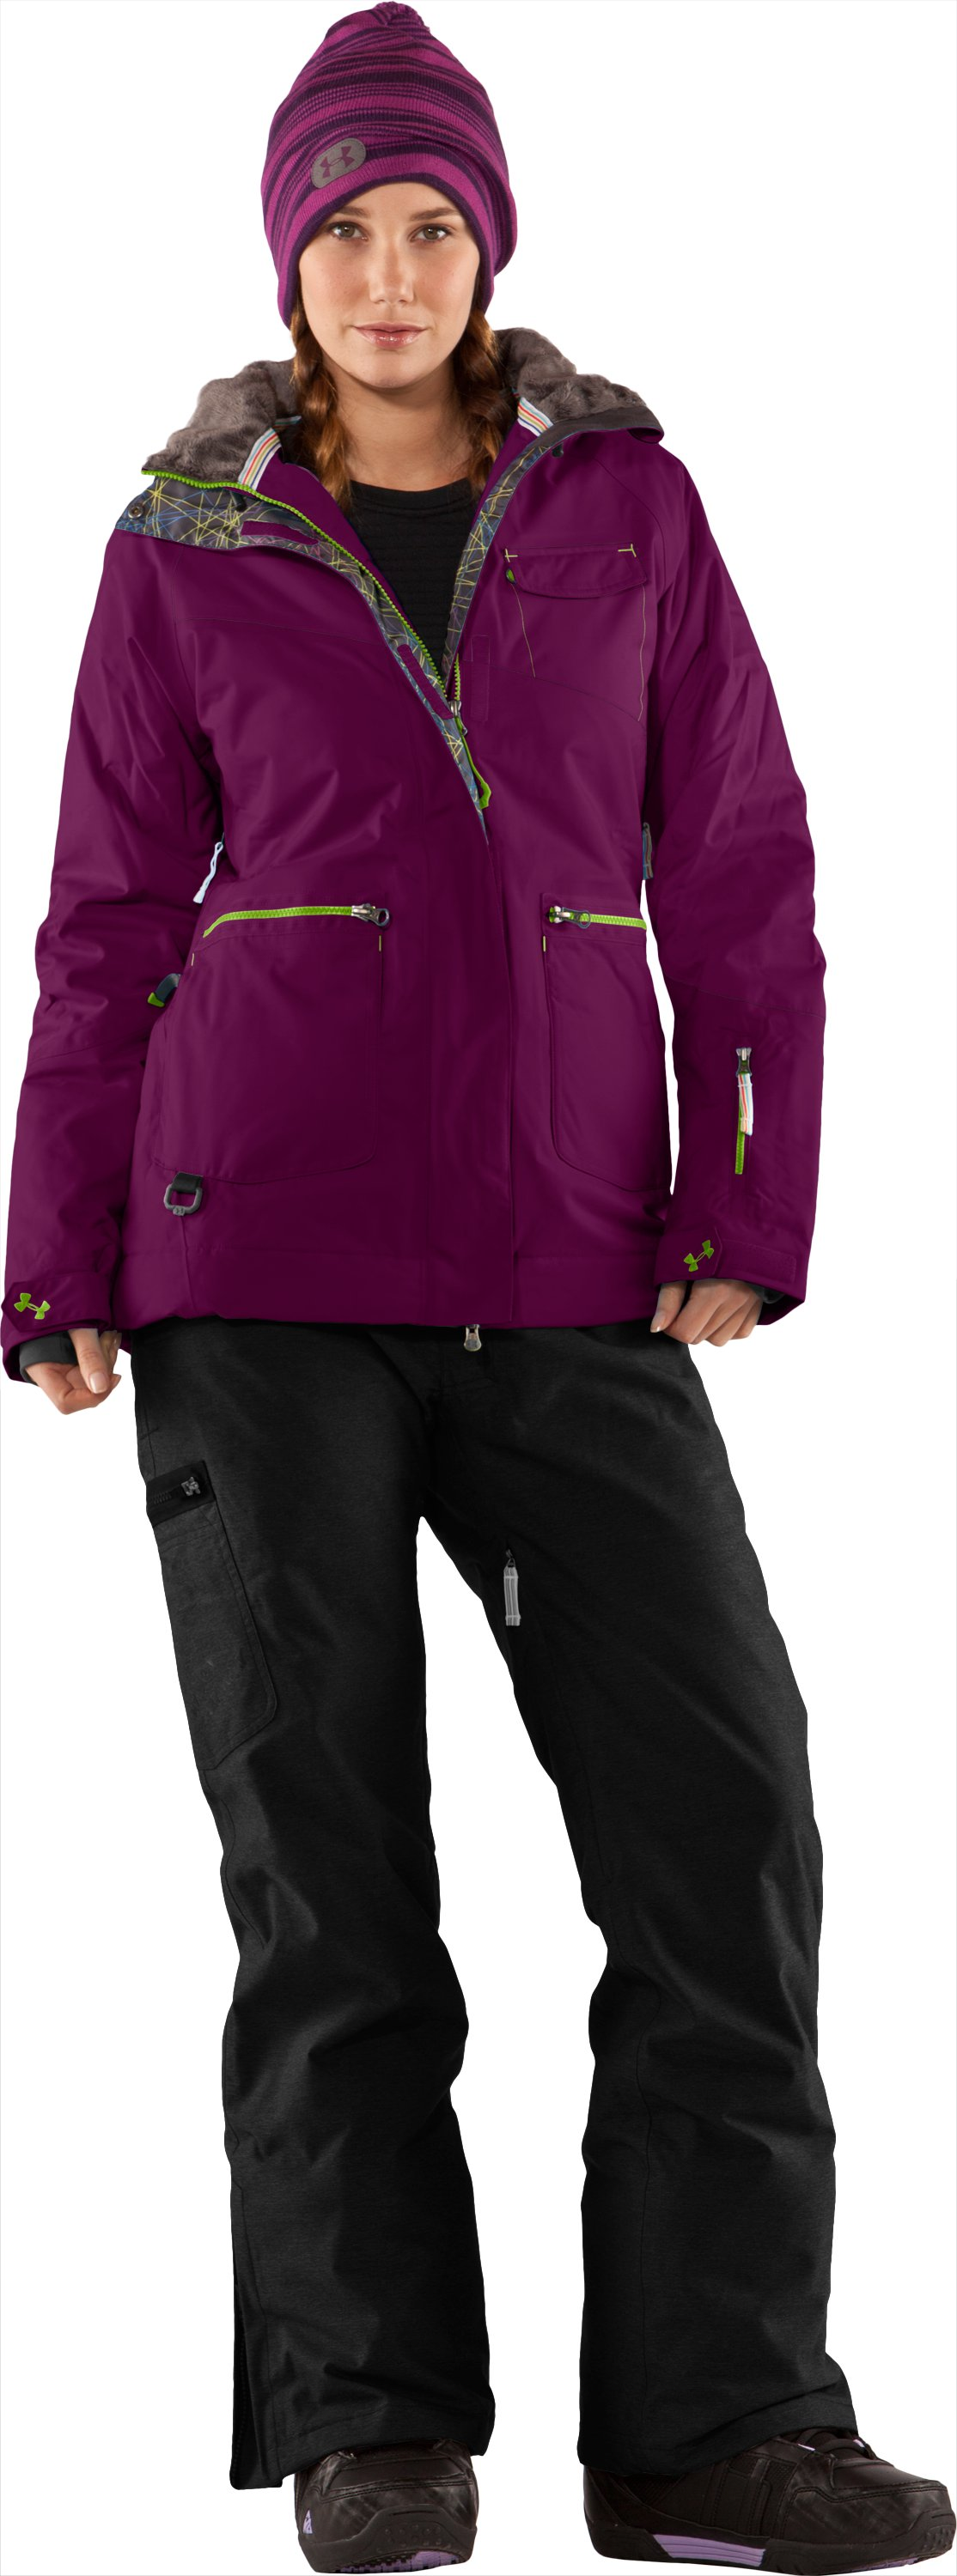 Women's Blar Waterproof Ski Jacket, Aubergine, Front